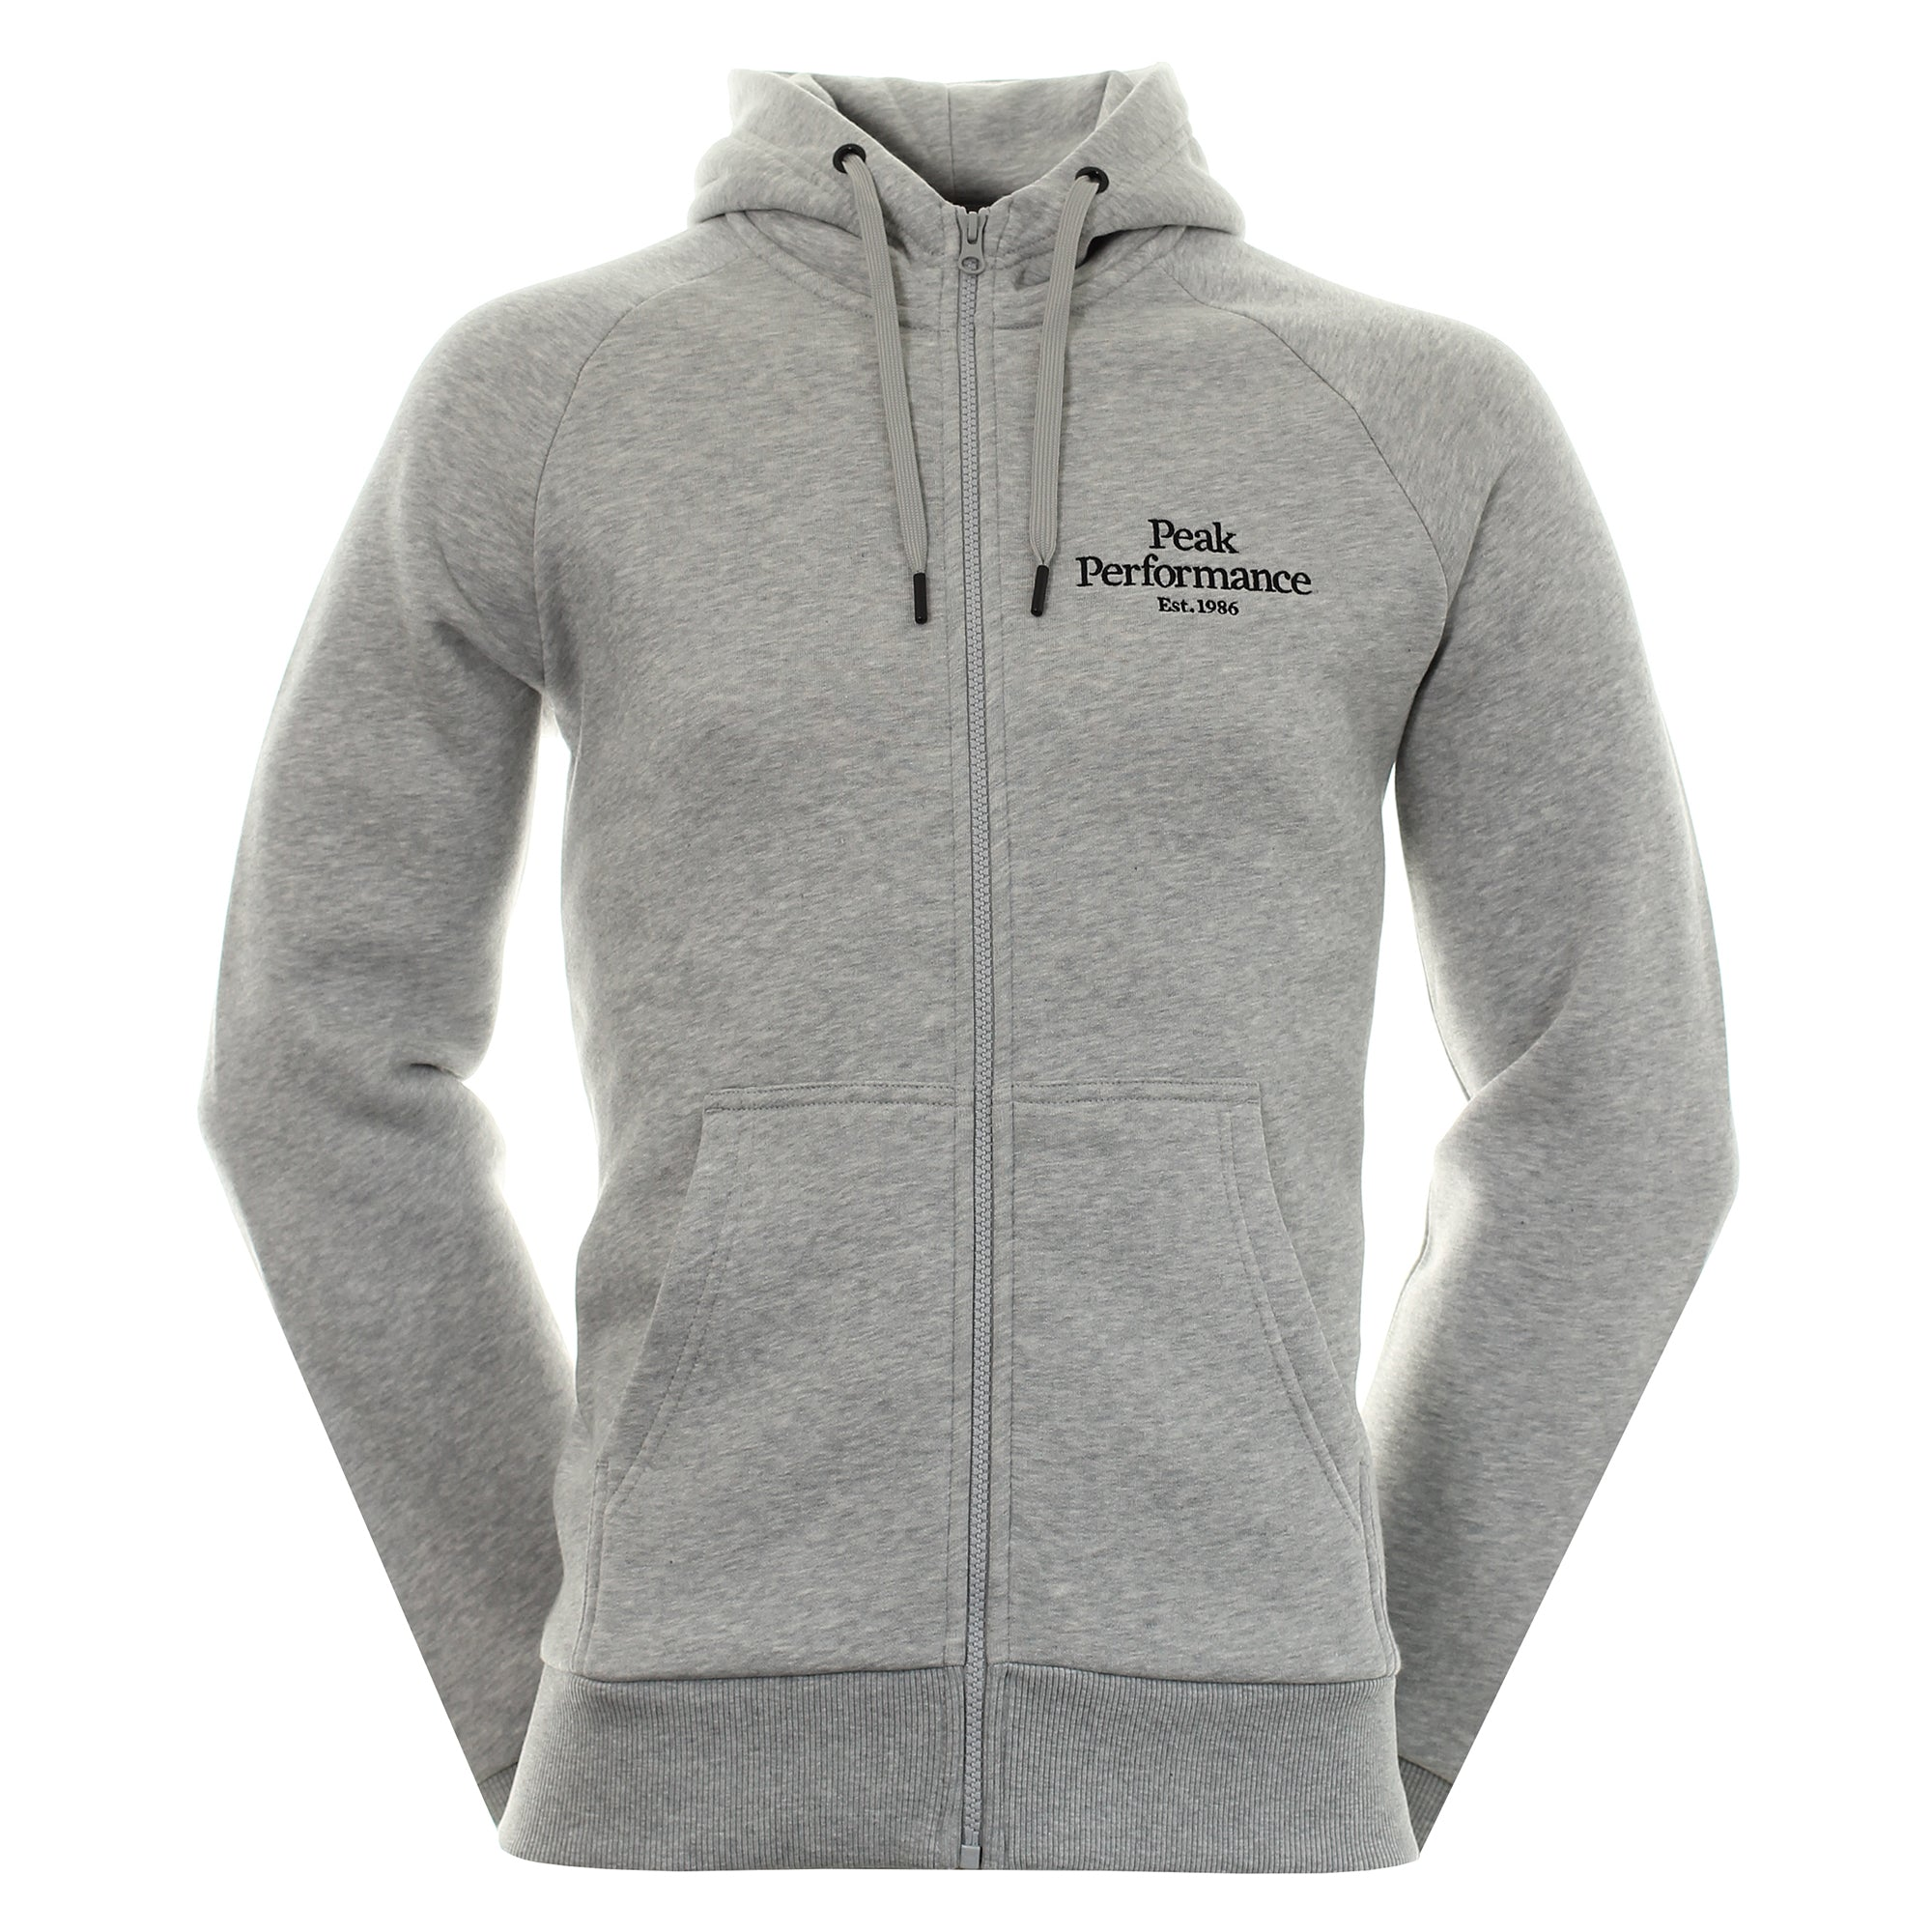 Peak Performance Original Zip Hood